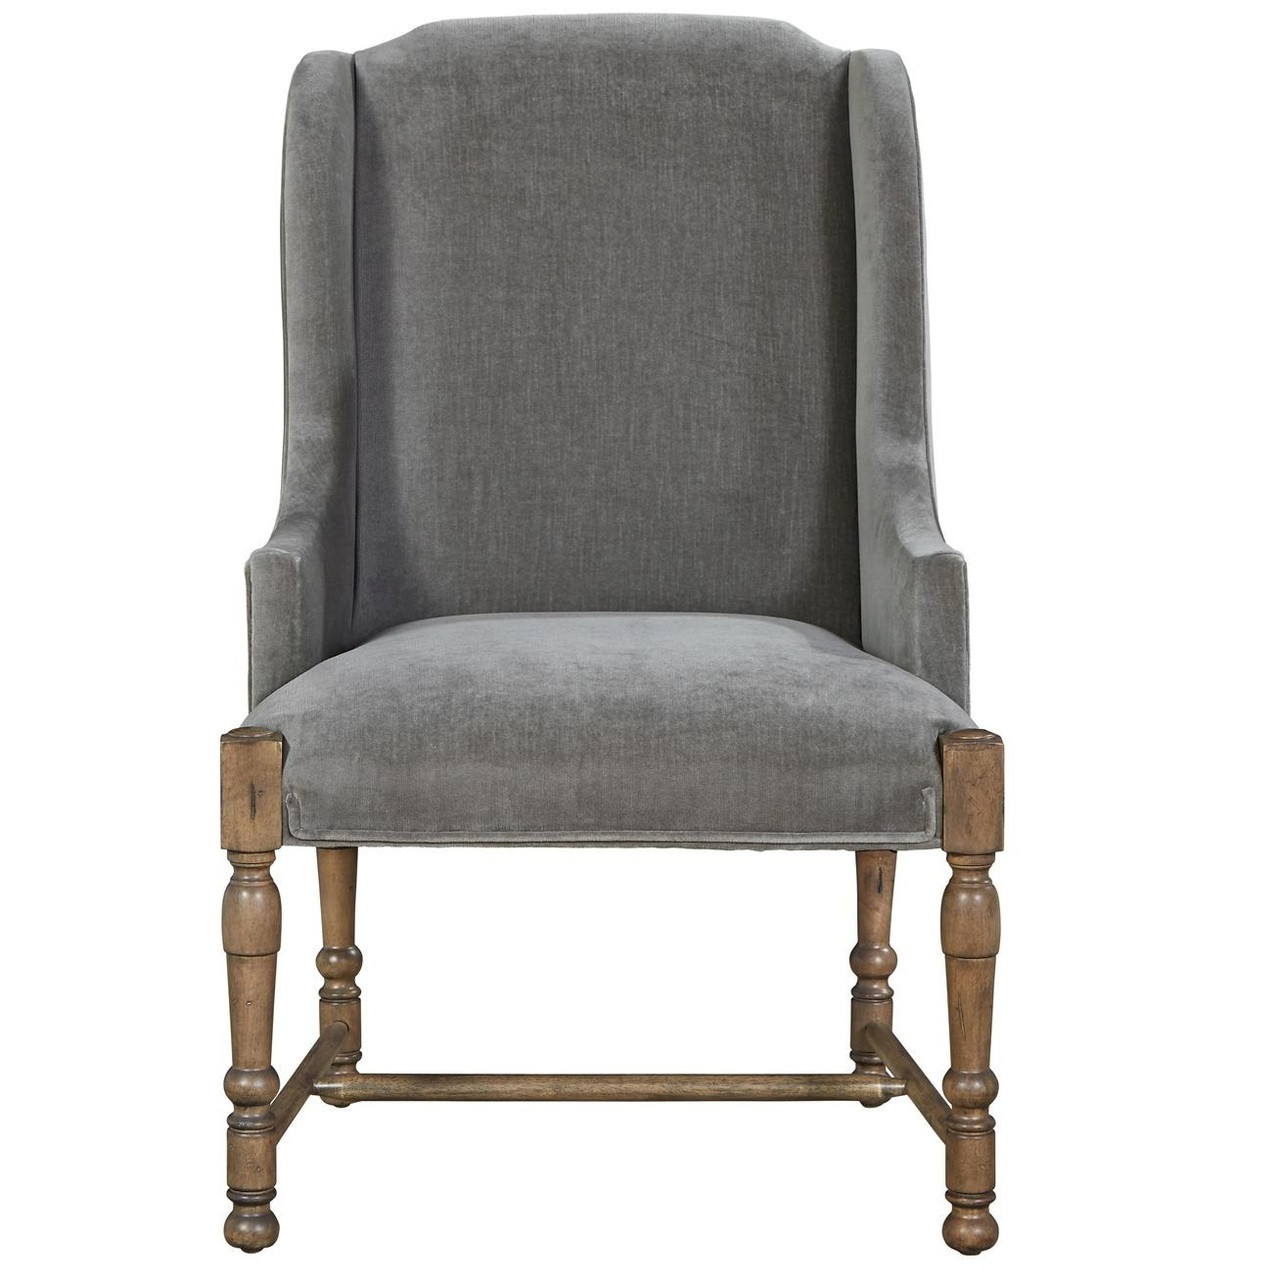 Etonnant French Country Gray Velvet Upholstered Host Arm Chair. Peachtree Arm Chair